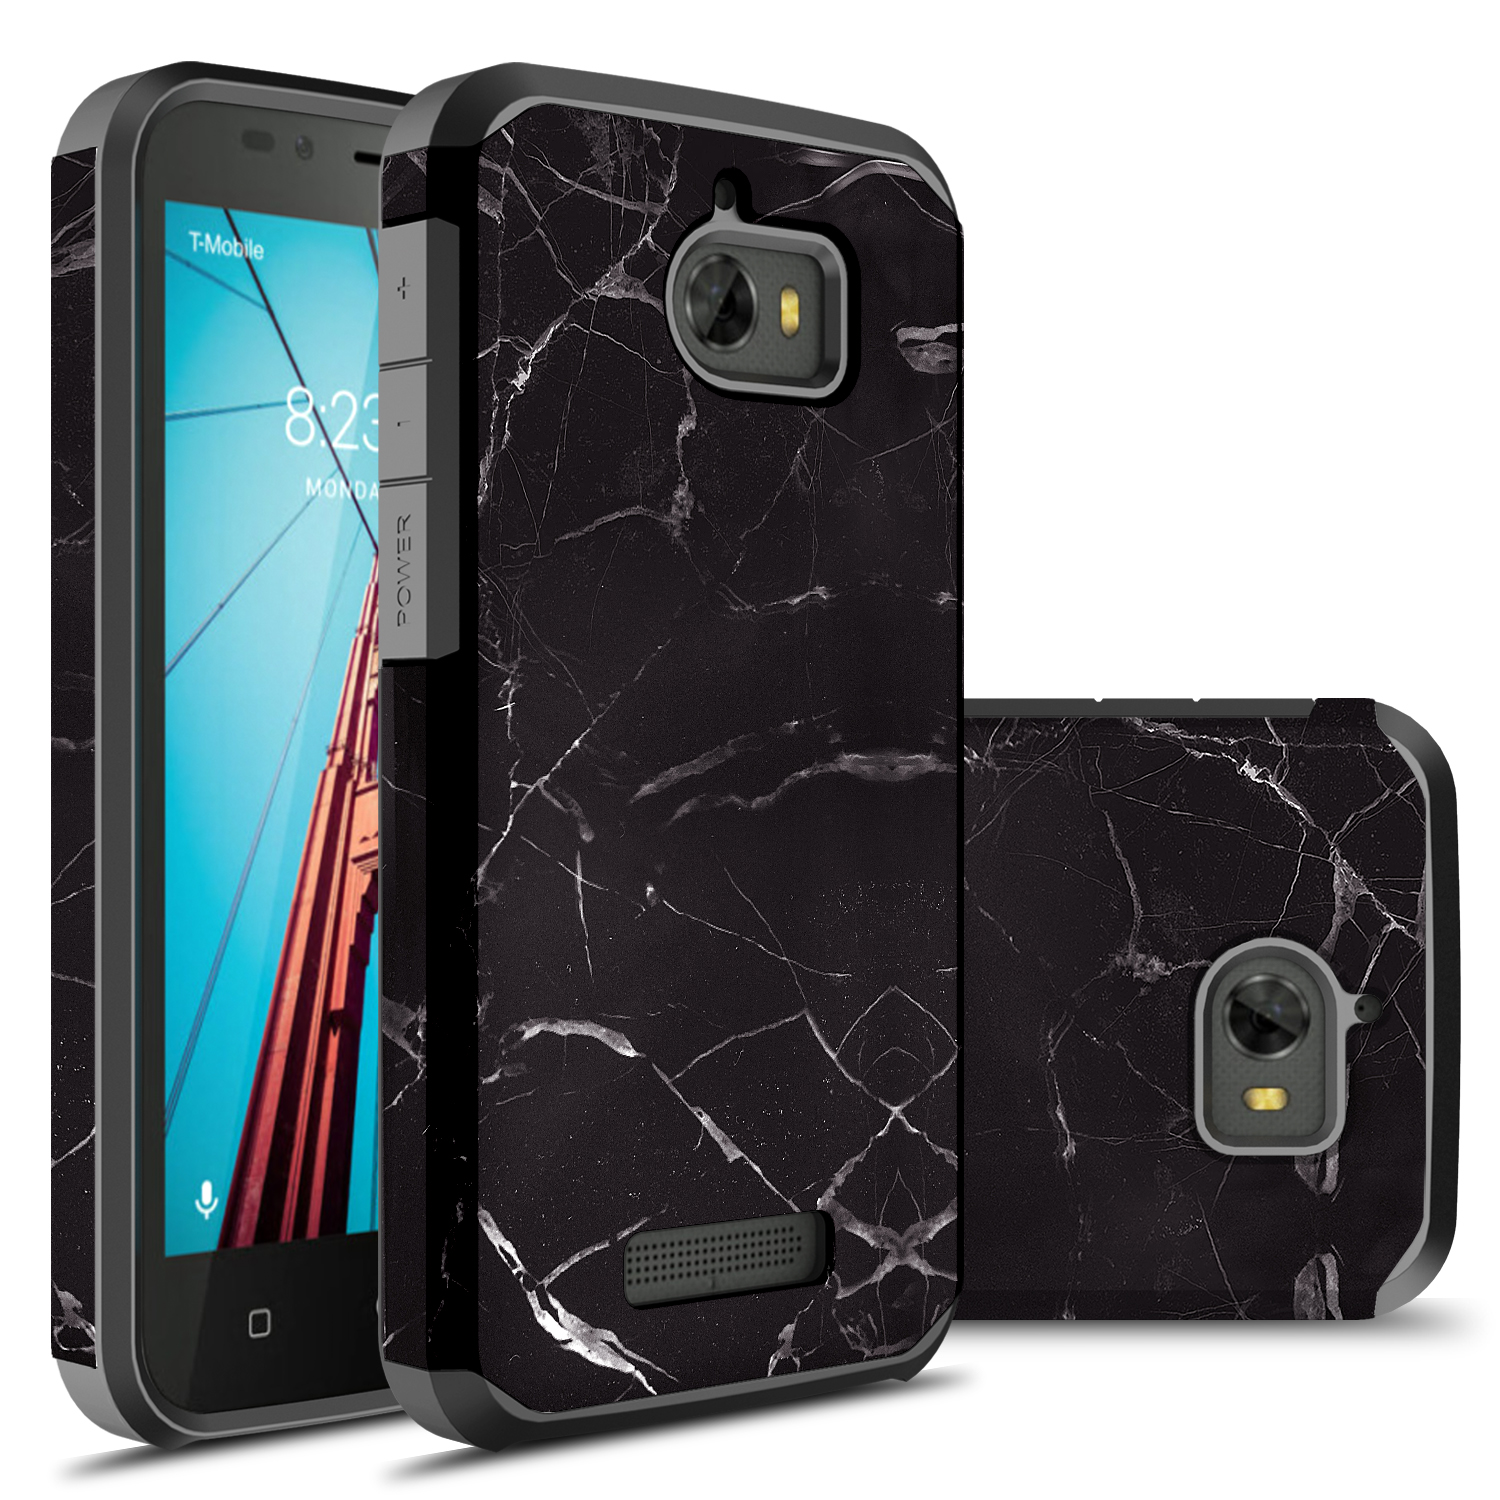 Coolpad Defiant Case, Hybrid Dual Layer Shockproof Hard Cover Graphic Fashion Cute Colorful Silicone Skin Case for Coolpad Defiant - Black Marble